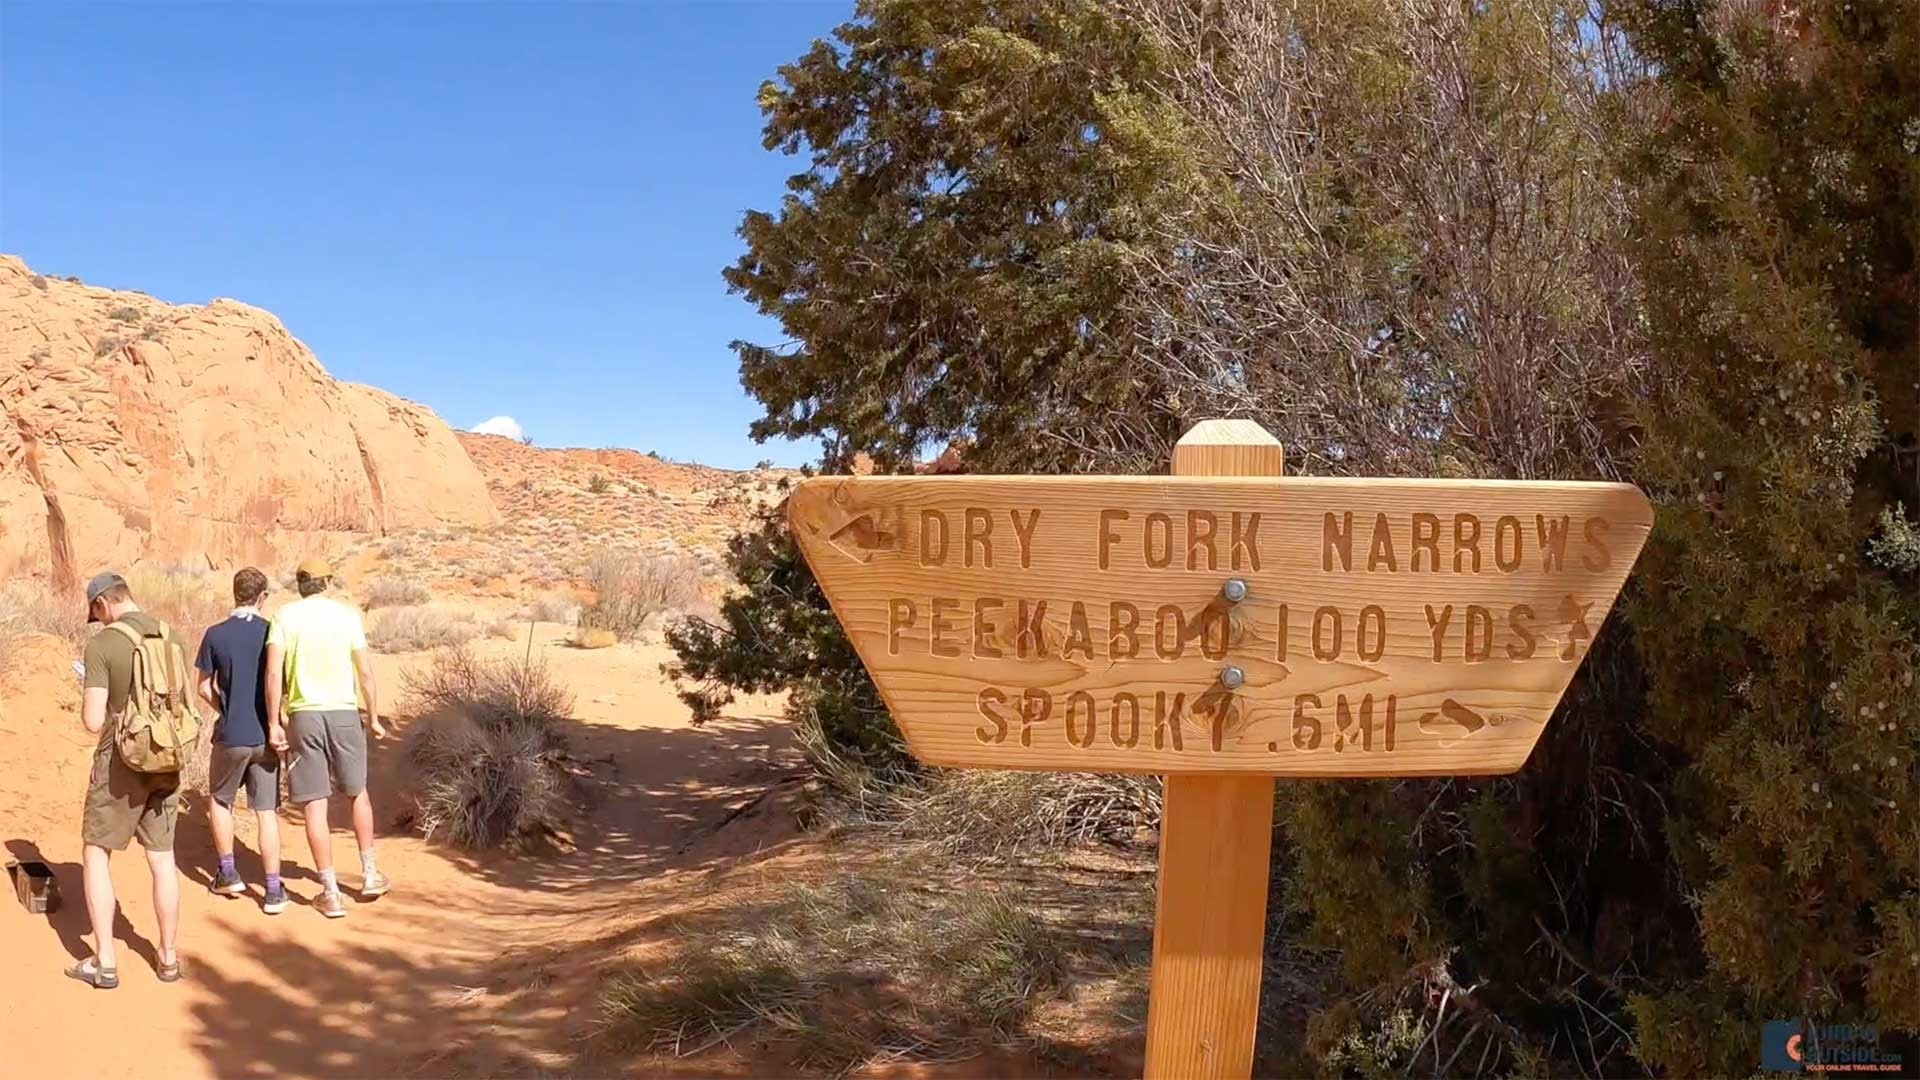 The Lower Dry Fork, Spooky, and Peek-A-Boo Trailhead Sign